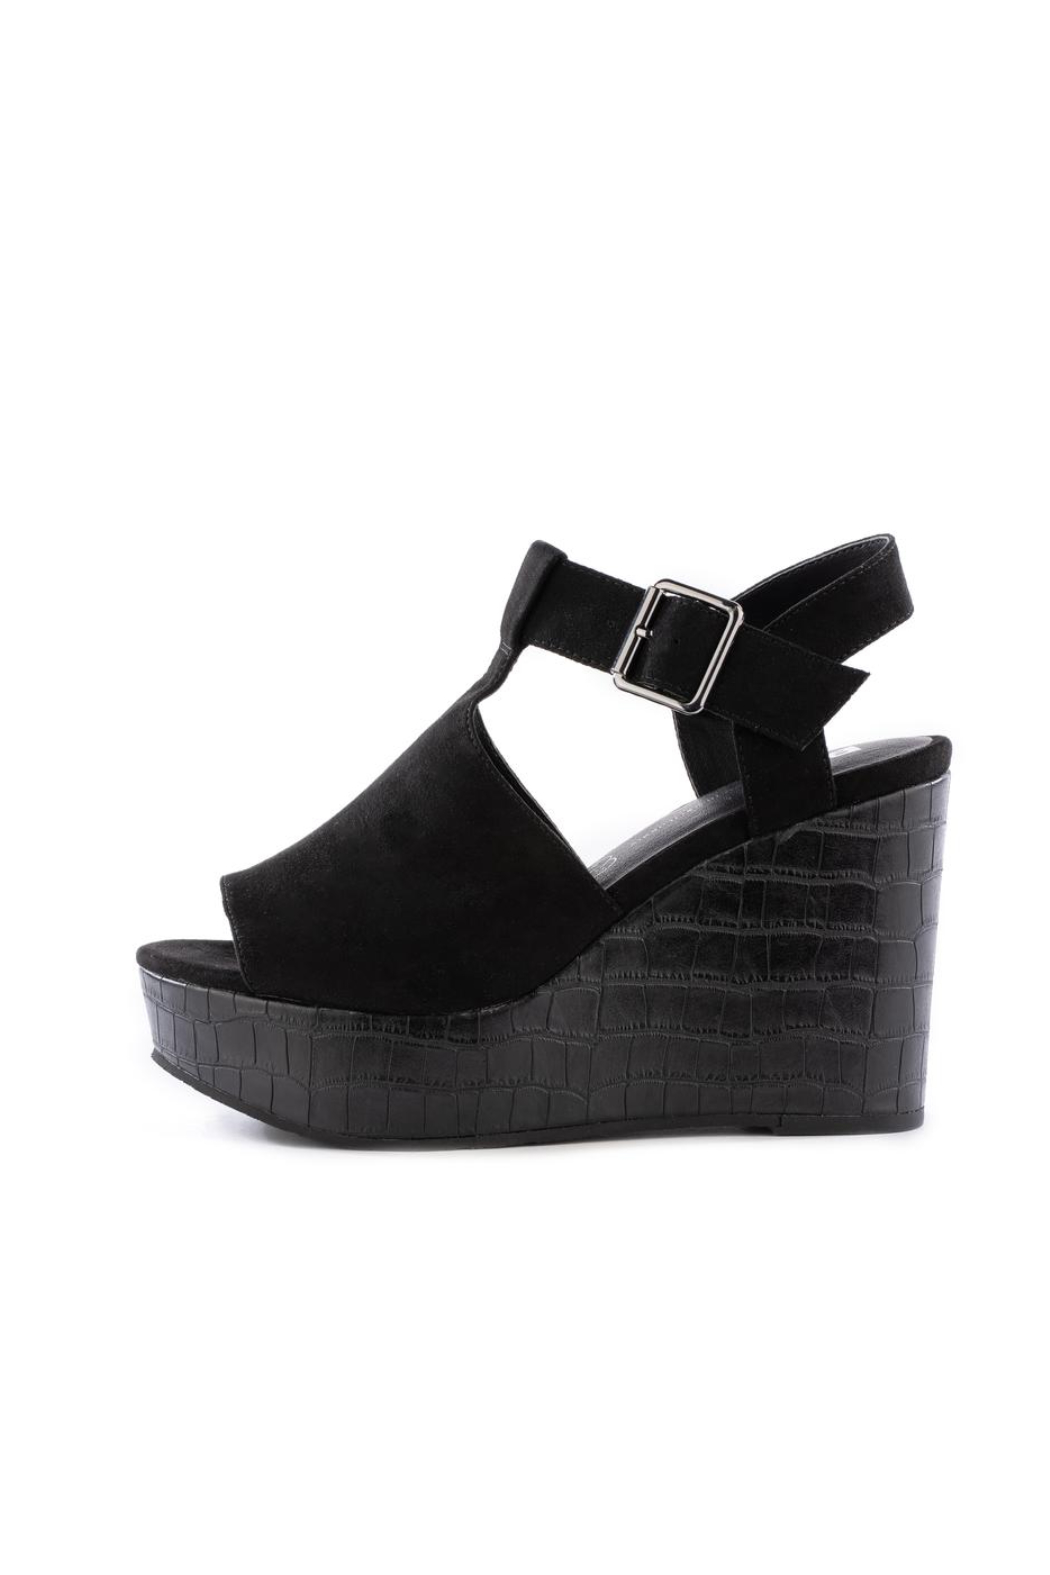 BC Footwear Here We Go Wedge - Front Cropped Image